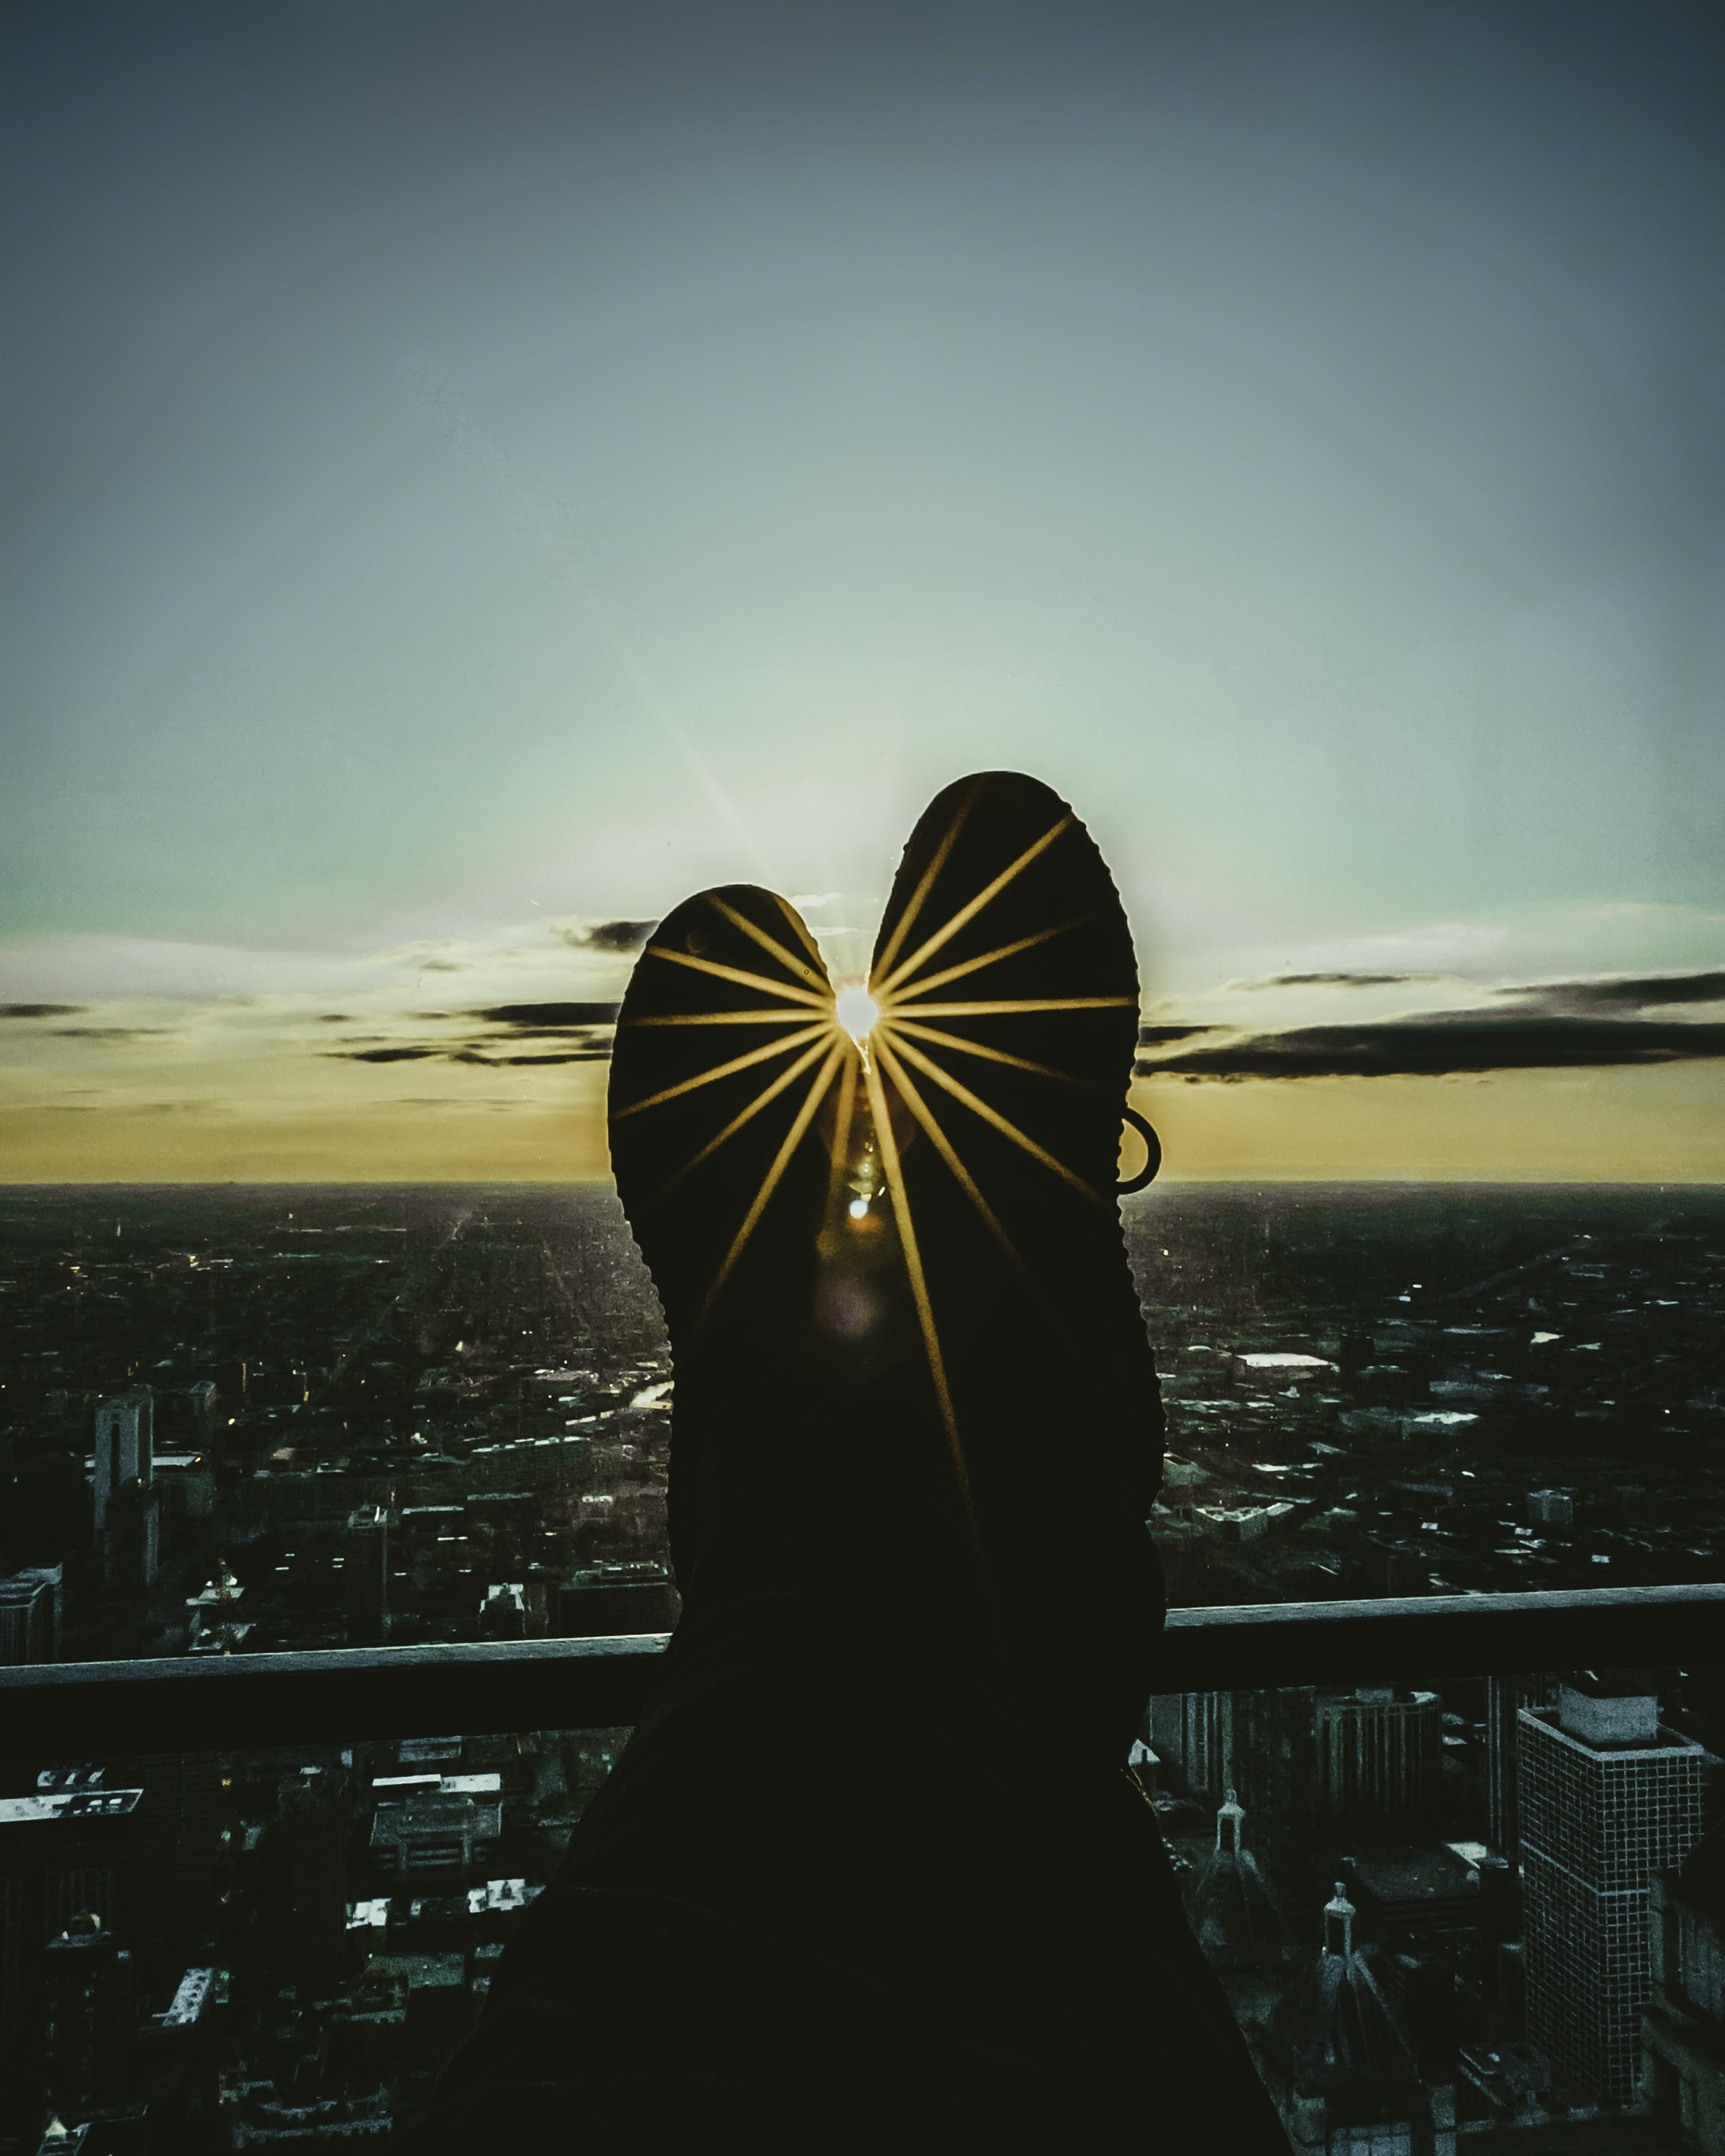 Silhouette of Person's Feet Leaning on Railings during Golden Hour